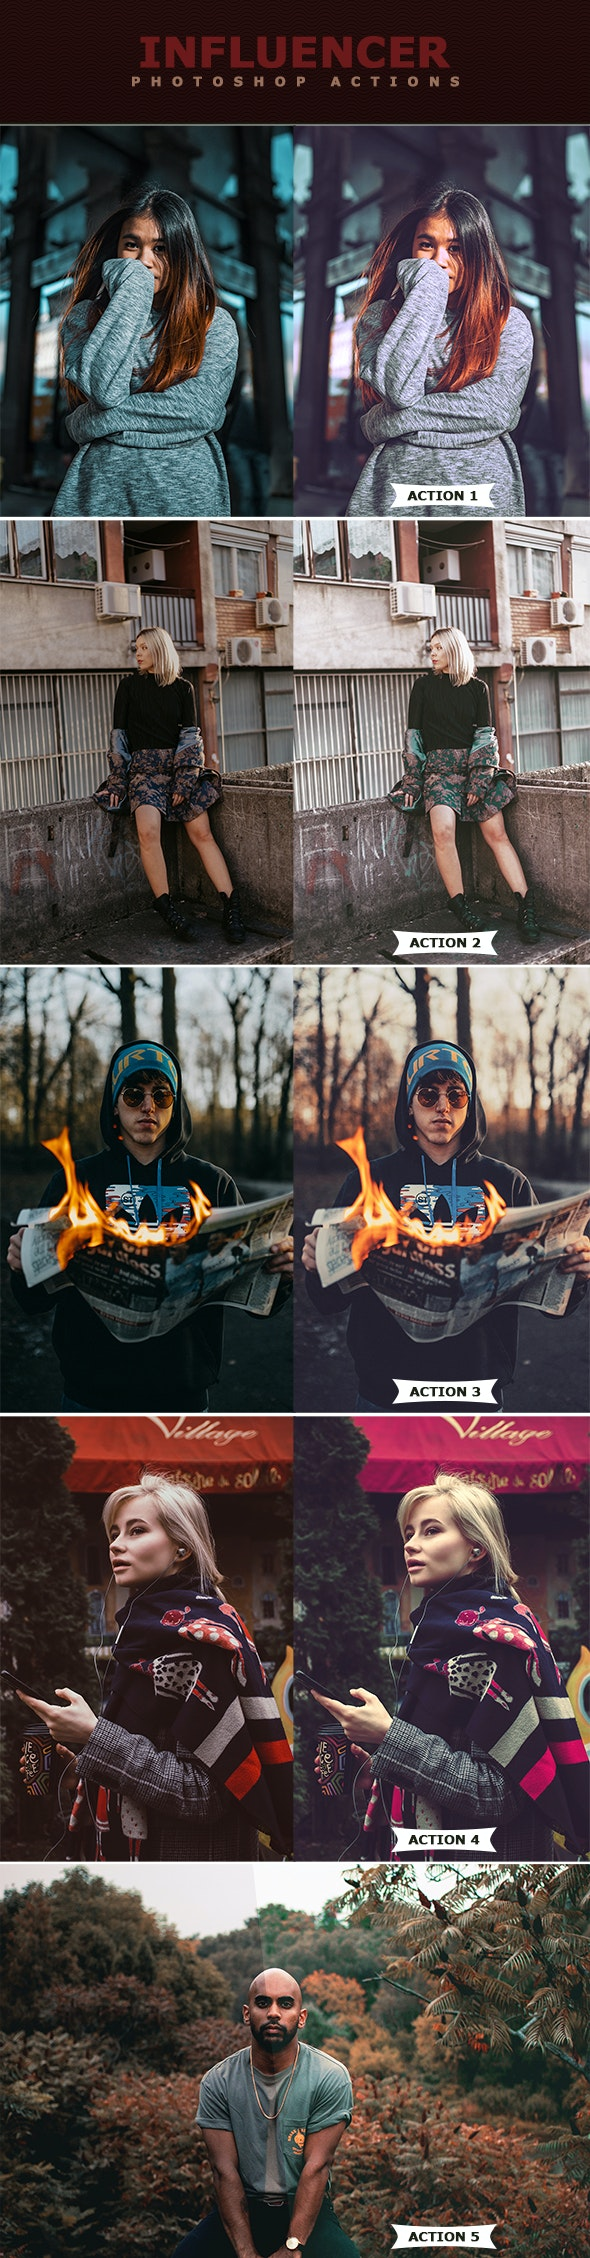 Influencer Photoshop Actionss - Photo Effects Actions